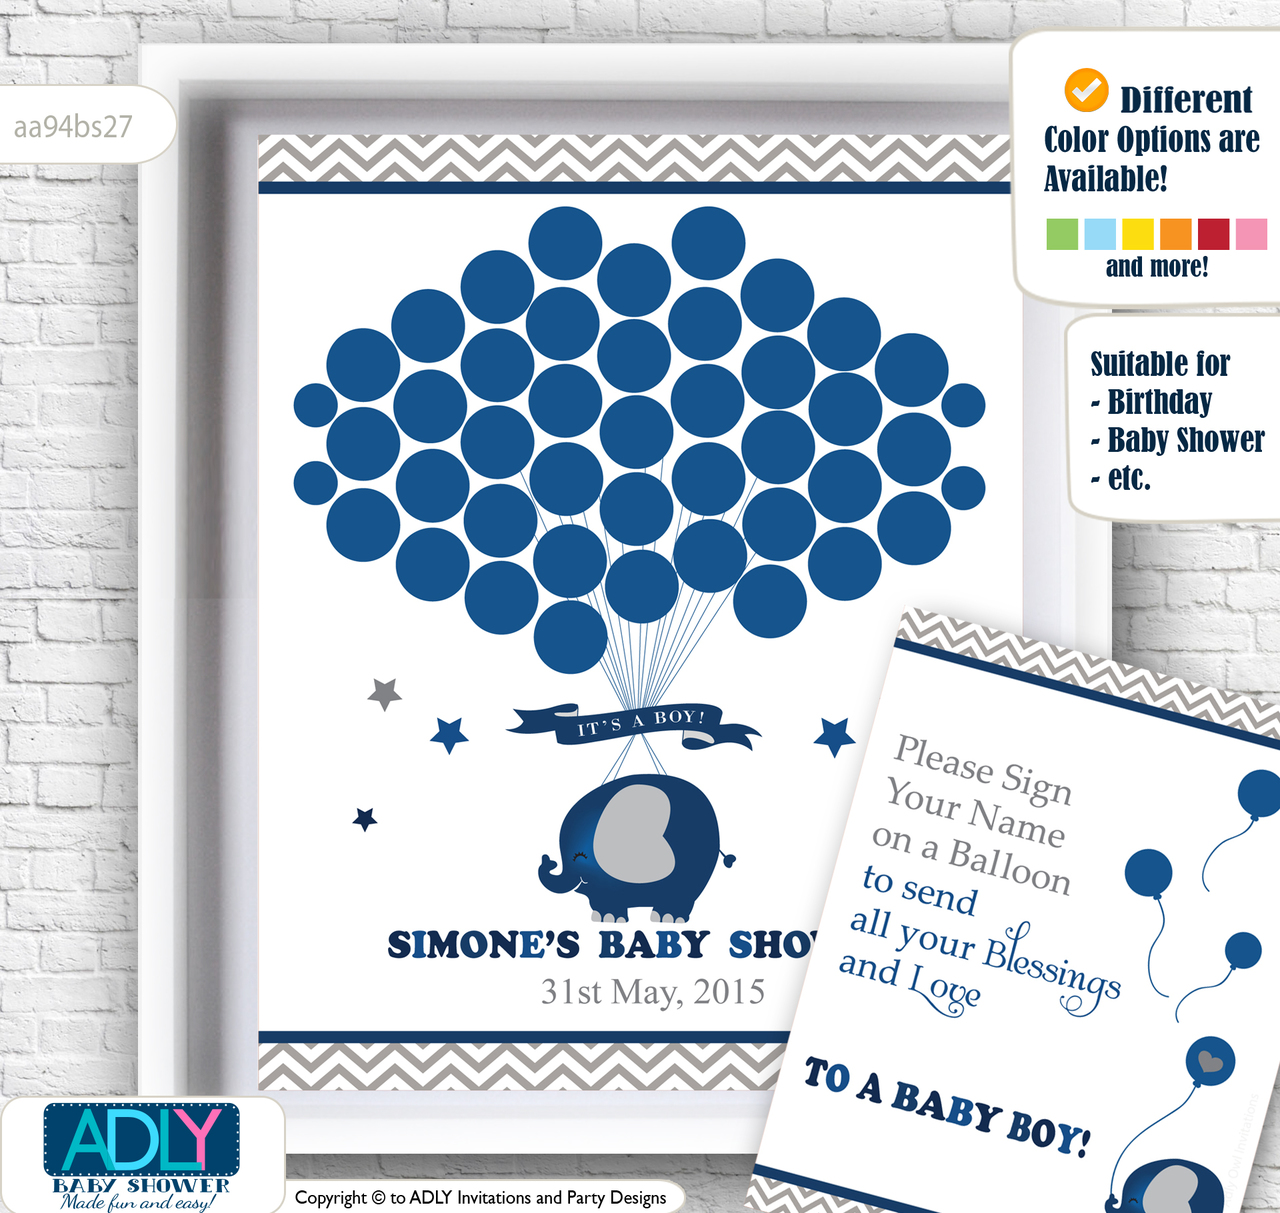 Peanut Elephant Word Search Game, Printable Card for Baby Elephant ...